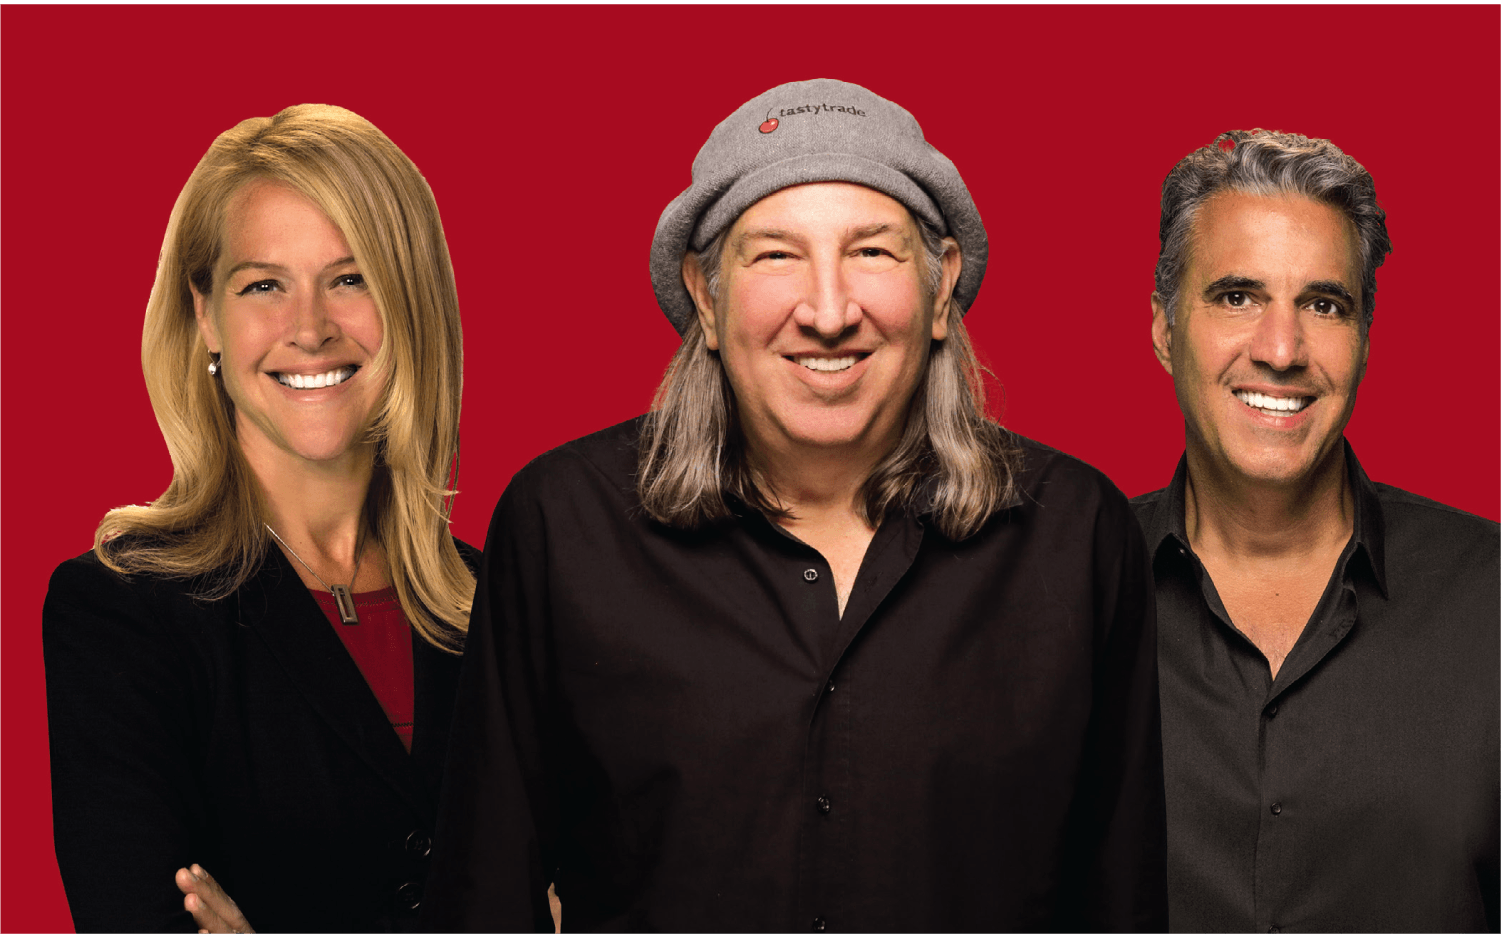 Tastytrade team from left, Krisit Ross, Tom Sosnoff, and Tony Battista